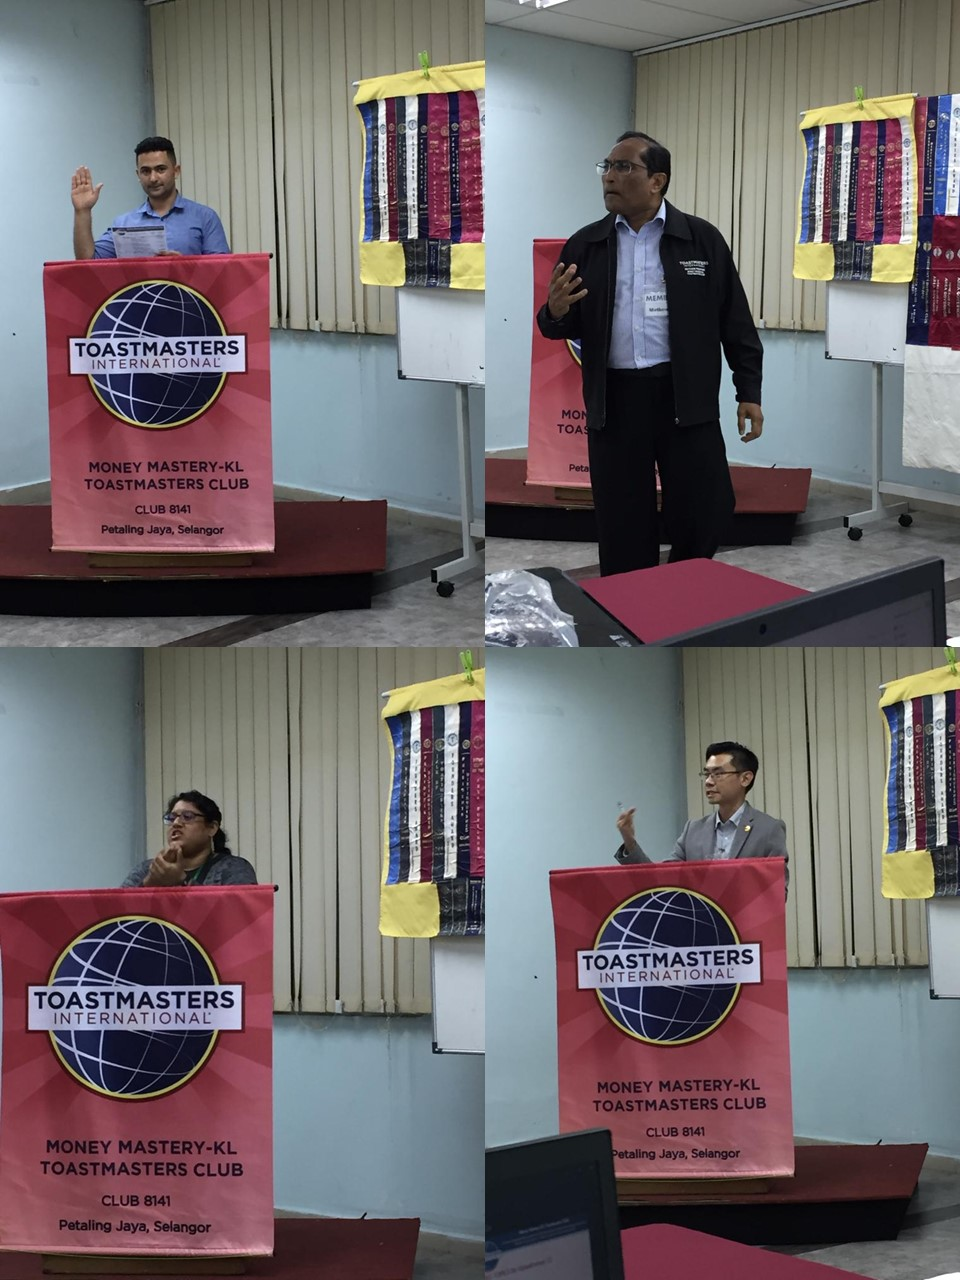 medium resolution of ron yeap acb cl played the role of toastmaster of the evening he talked about his own endeavours in public speaking and use of creativity at work and as a